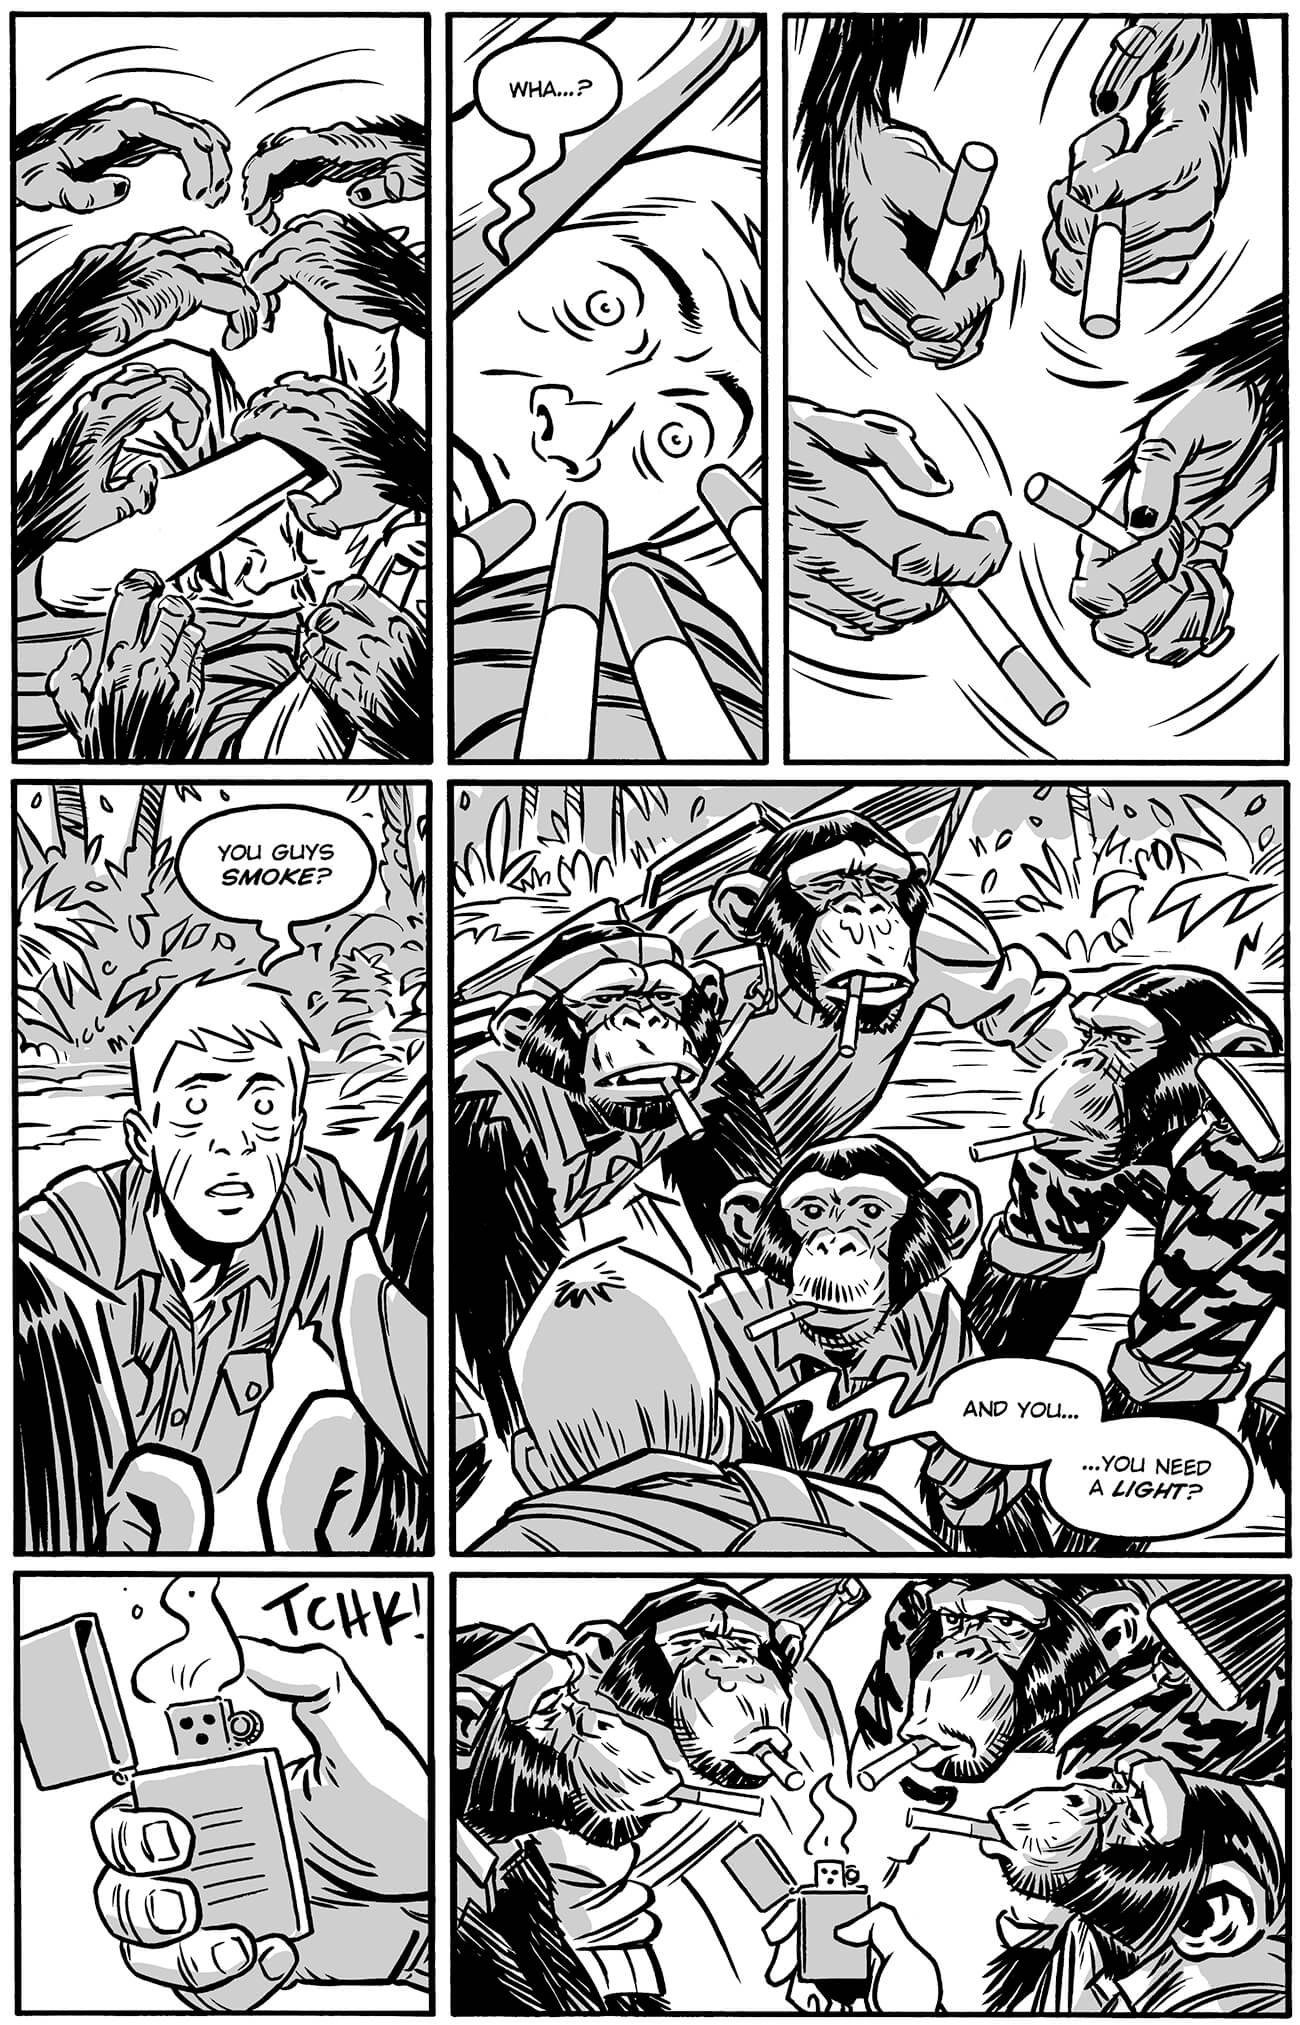 guerillas by brahm revel, page 84